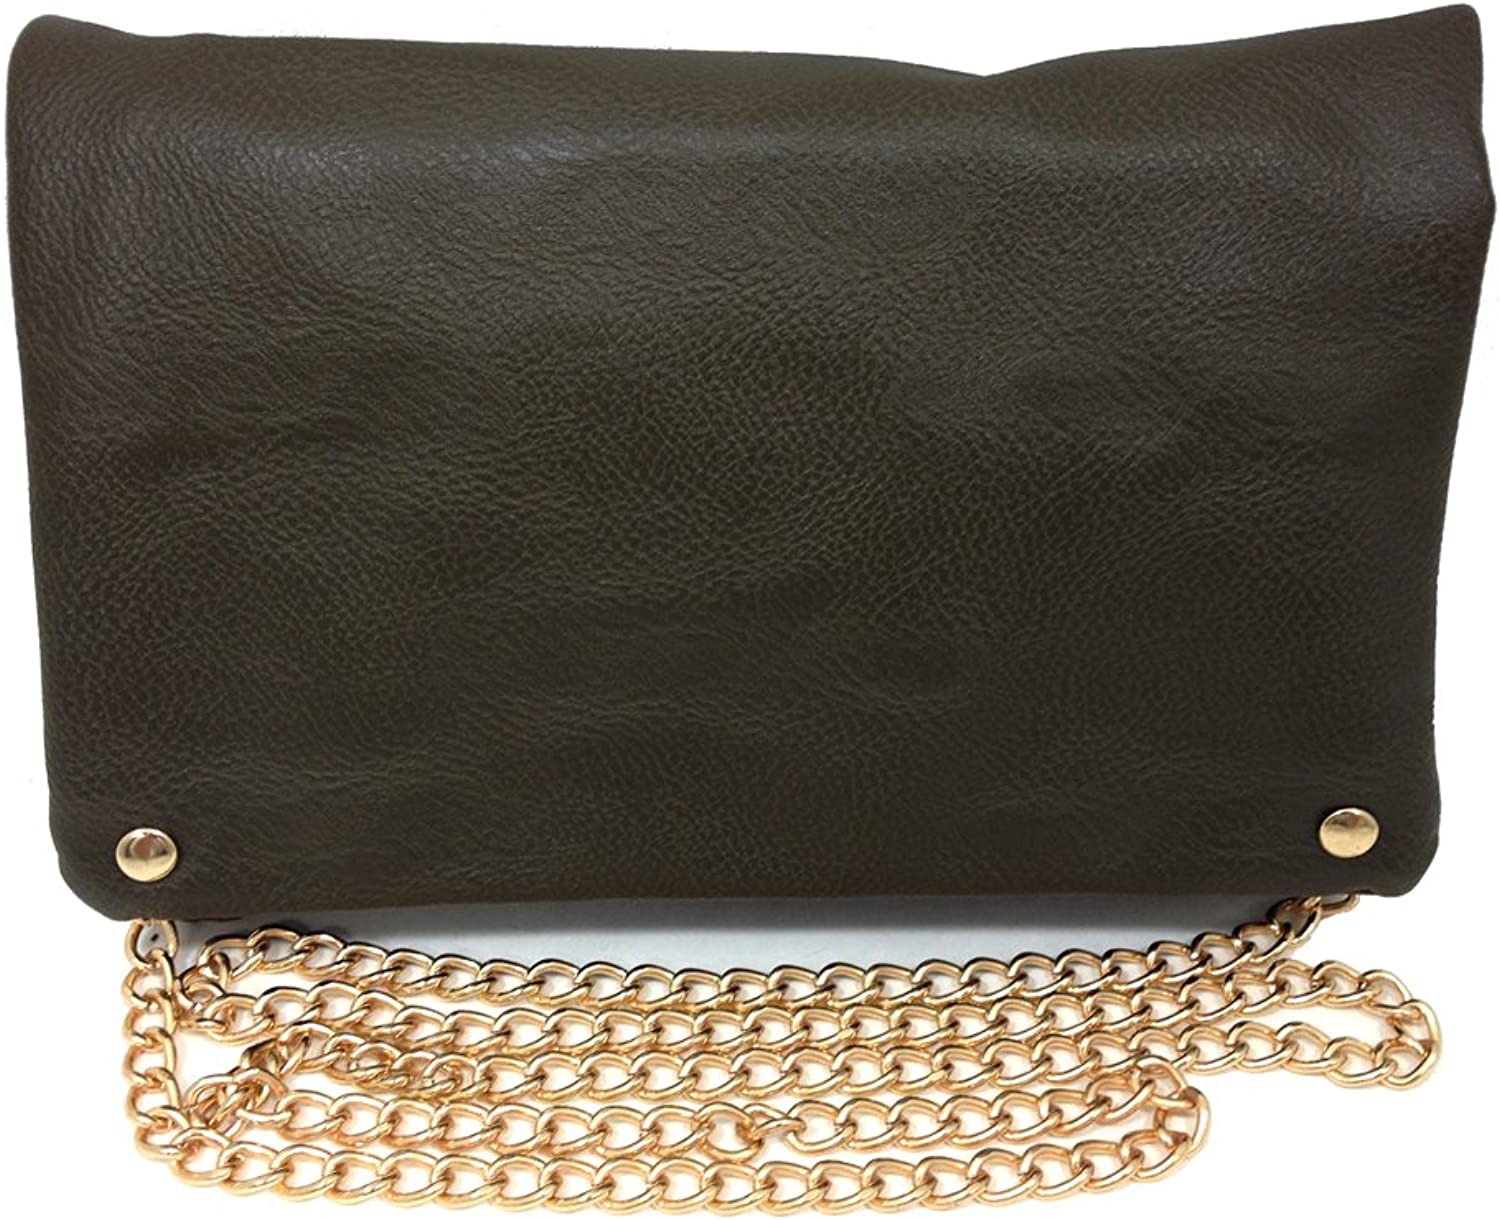 Schonfeld Crossbody Handbag Purse with gold Style Chain Faux Leather